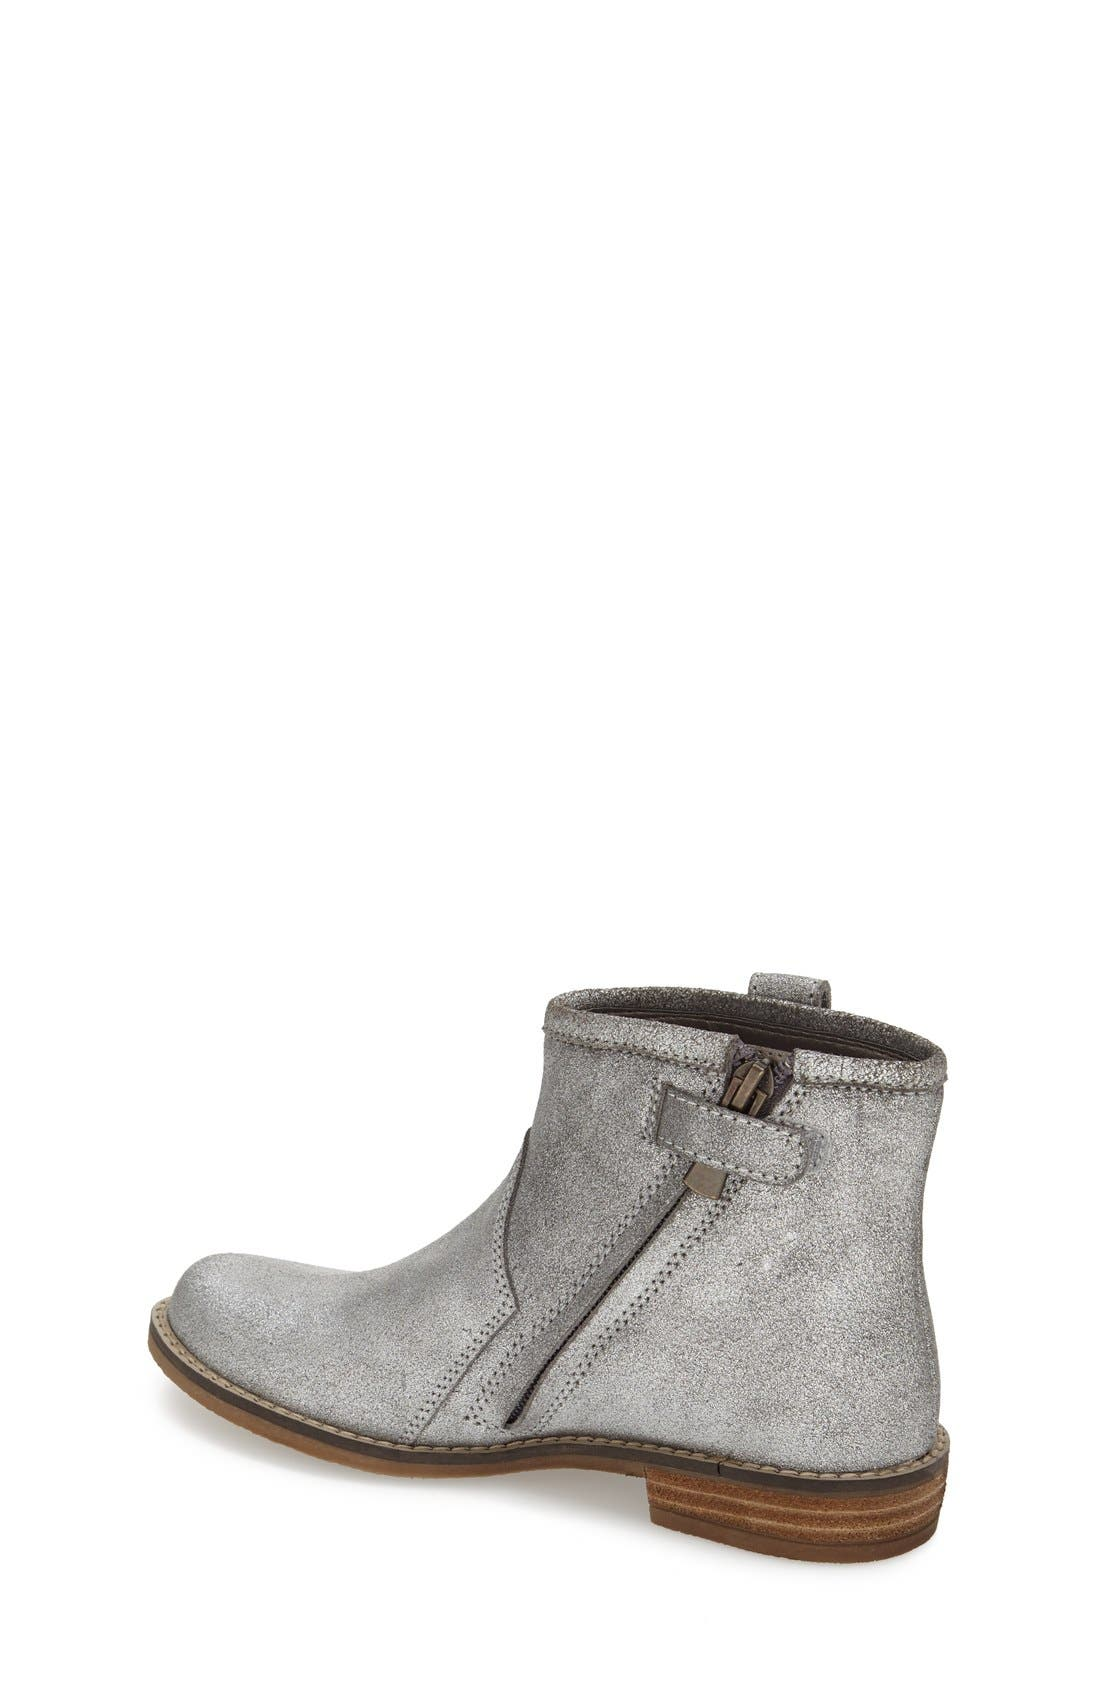 Peek 'Birch' Leather Ankle Boot,                             Alternate thumbnail 2, color,                             040